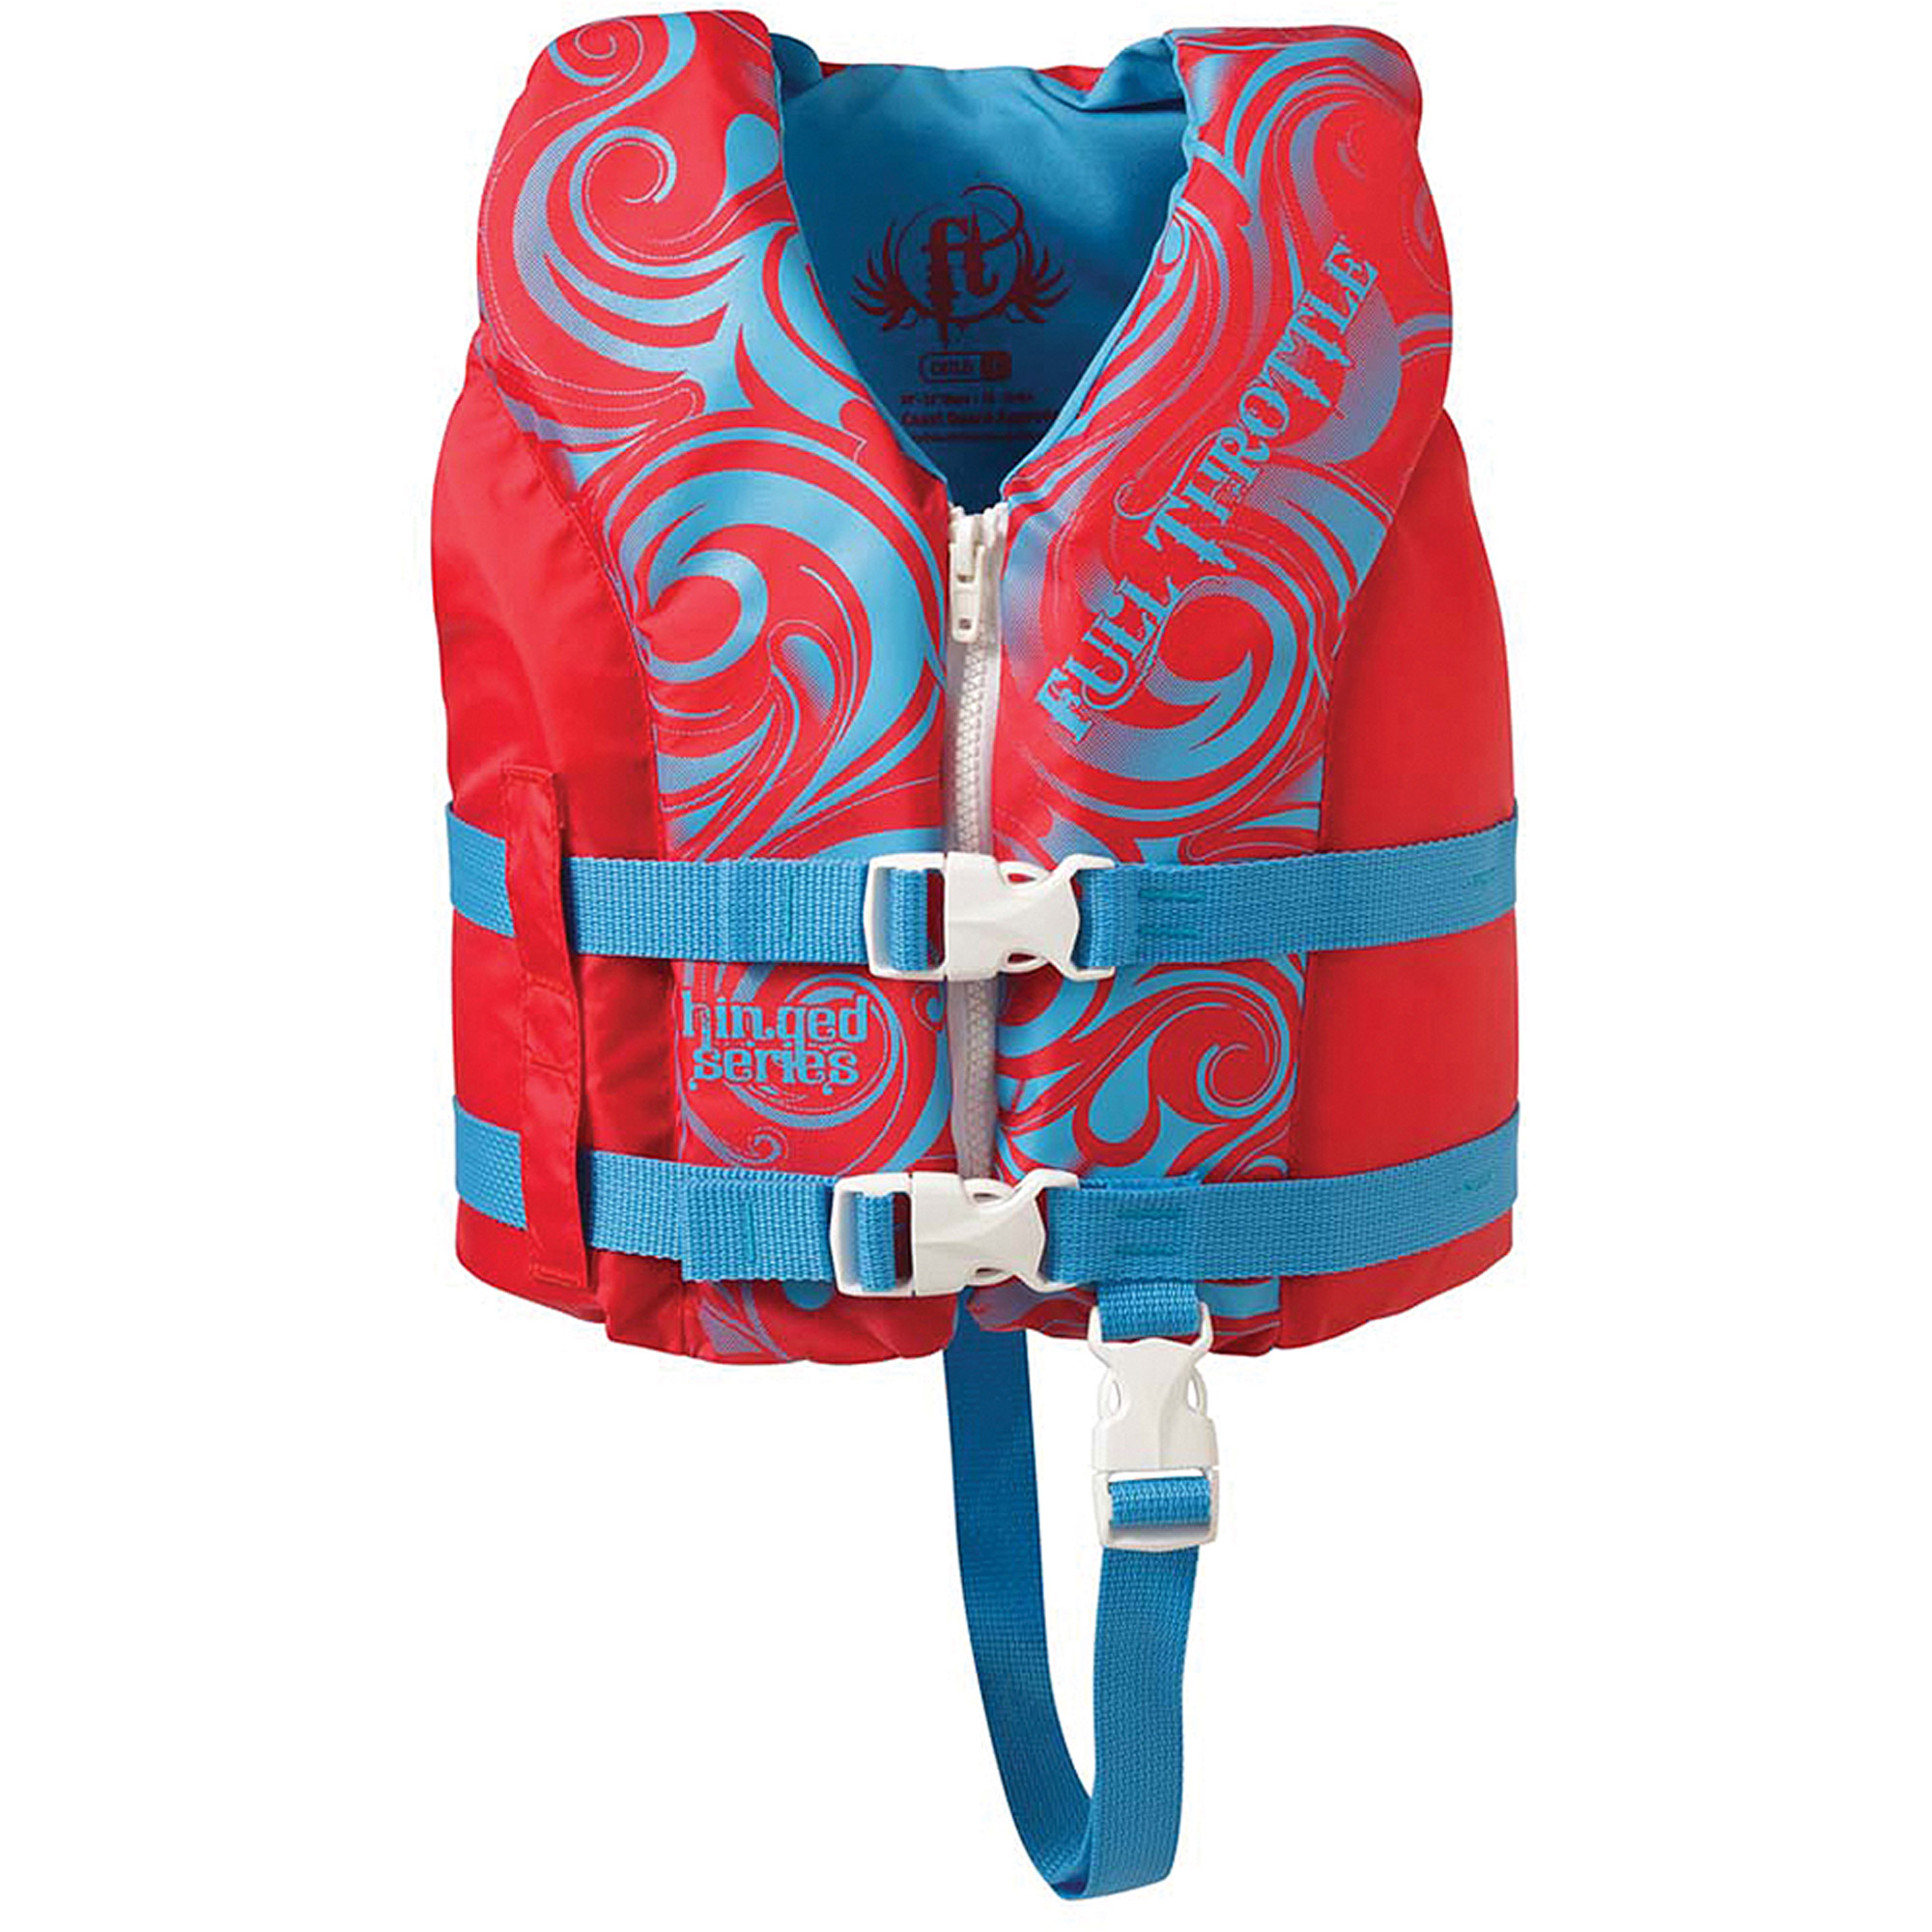 Full Throttle Child/Youth Hinged Water Sports Vest, Child, Berry/Blue